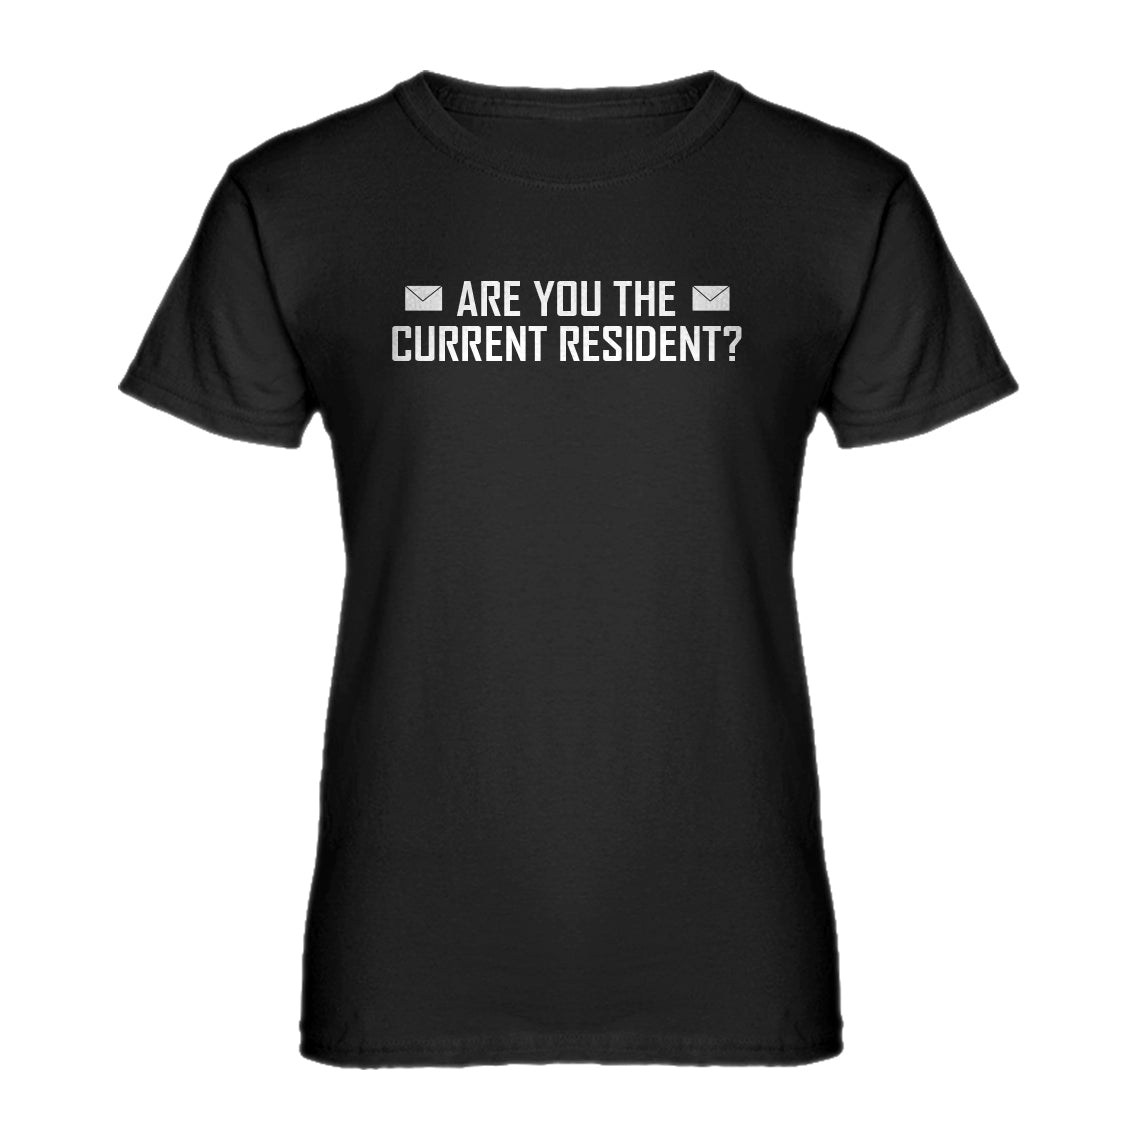 Womens Are you the Current Resident? Ladies' T-shirt